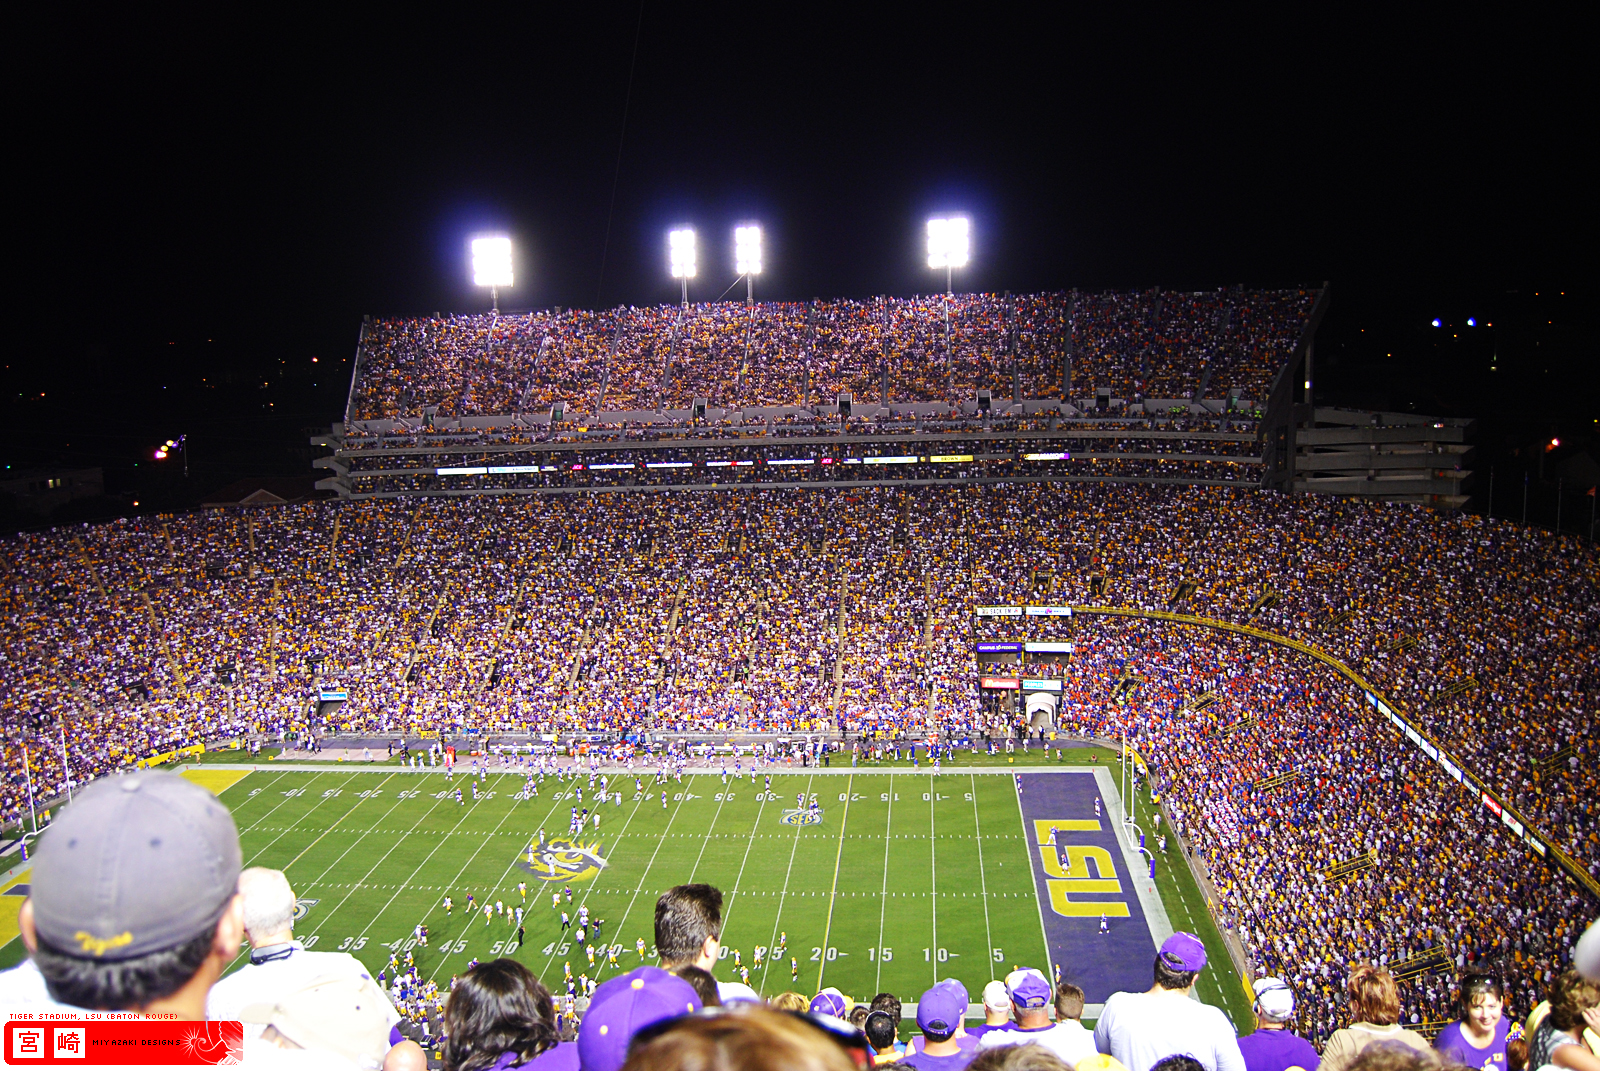 Tiger Stadium - LSU vs UF 9 by yoshisupremacy on DeviantArt